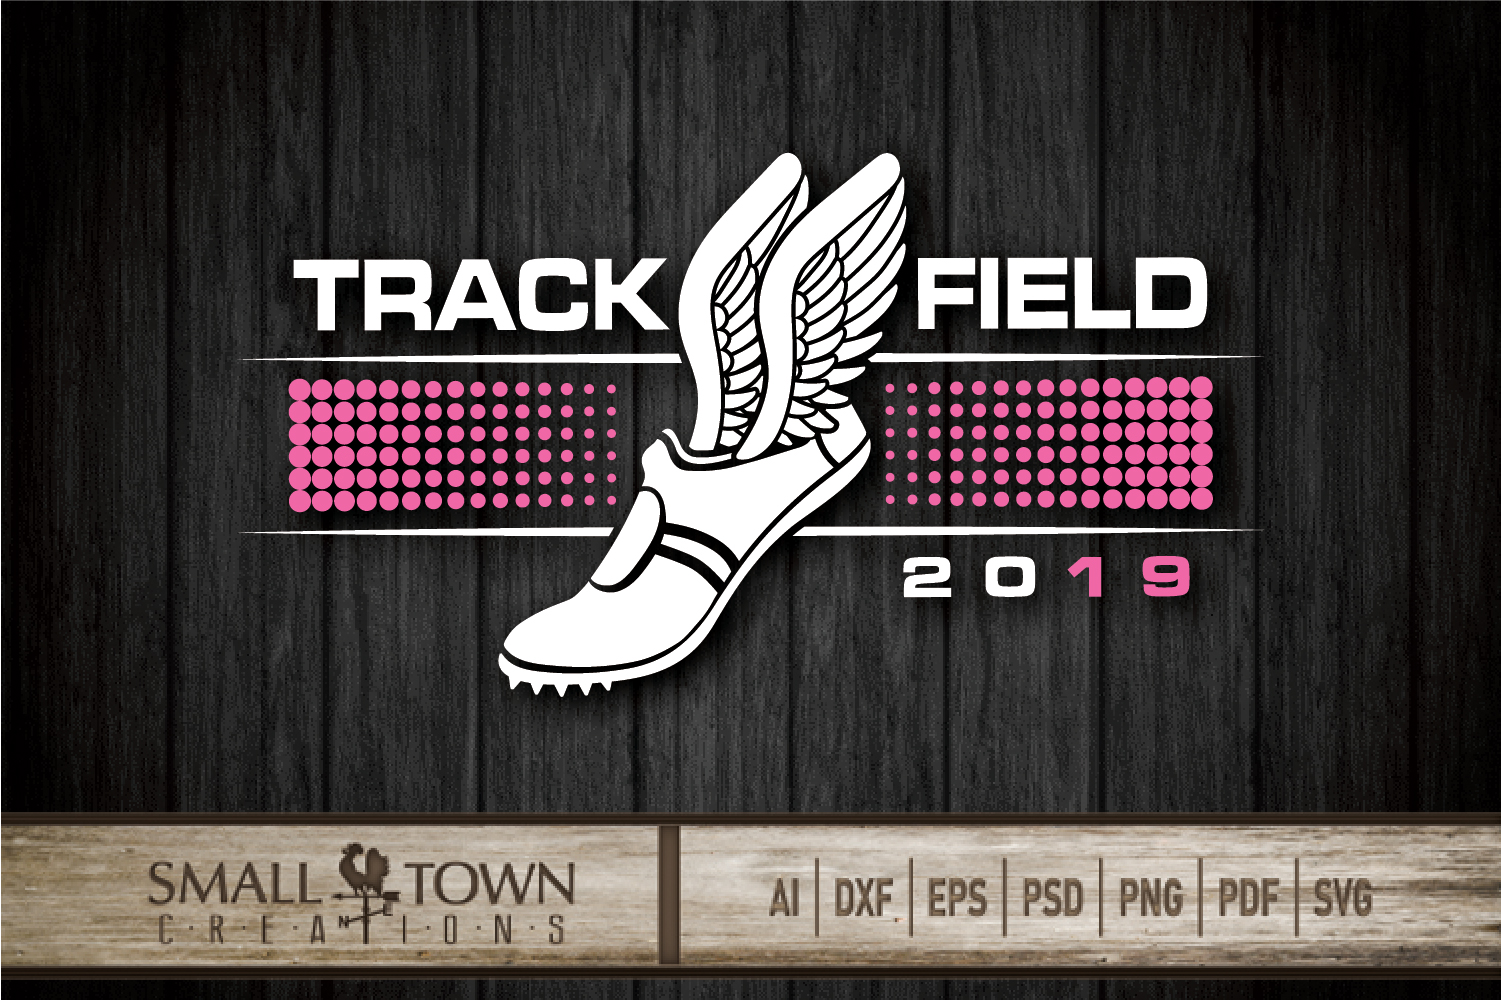 Track and Field, Team sport, Track logo, PRINT, CUT, DESIGN example image 5